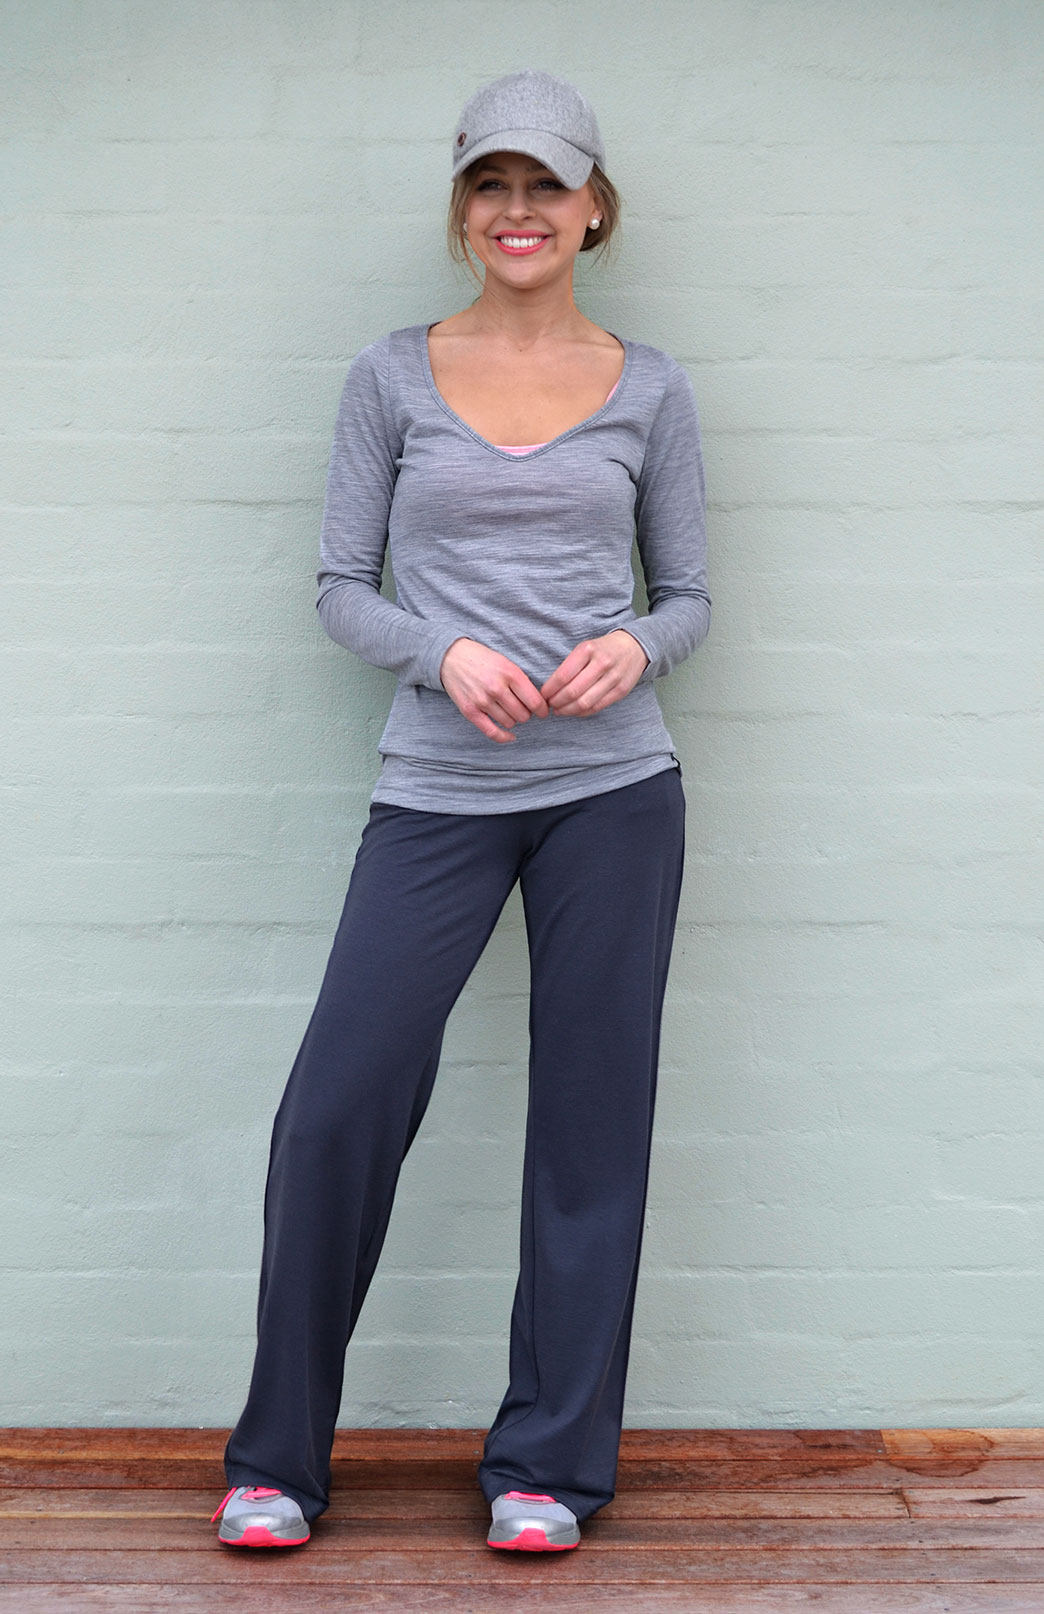 Lightweight Yoga Pants - Women's Steel Grey Merino Wool Yoga and Activewear Pants - Smitten Merino Tasmania Australia